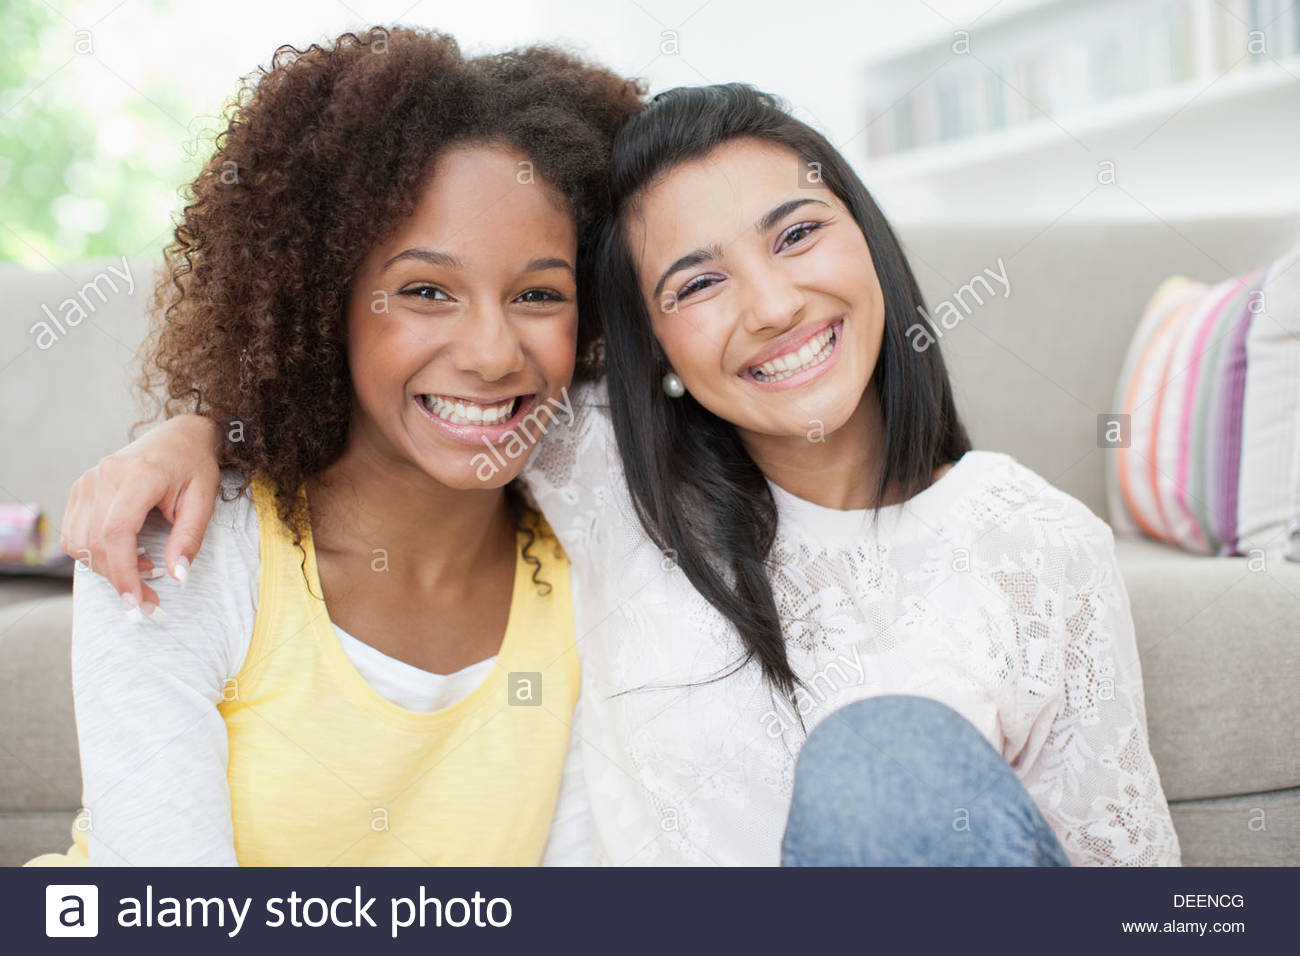 Smiling teenage girls hugging Stock Photo